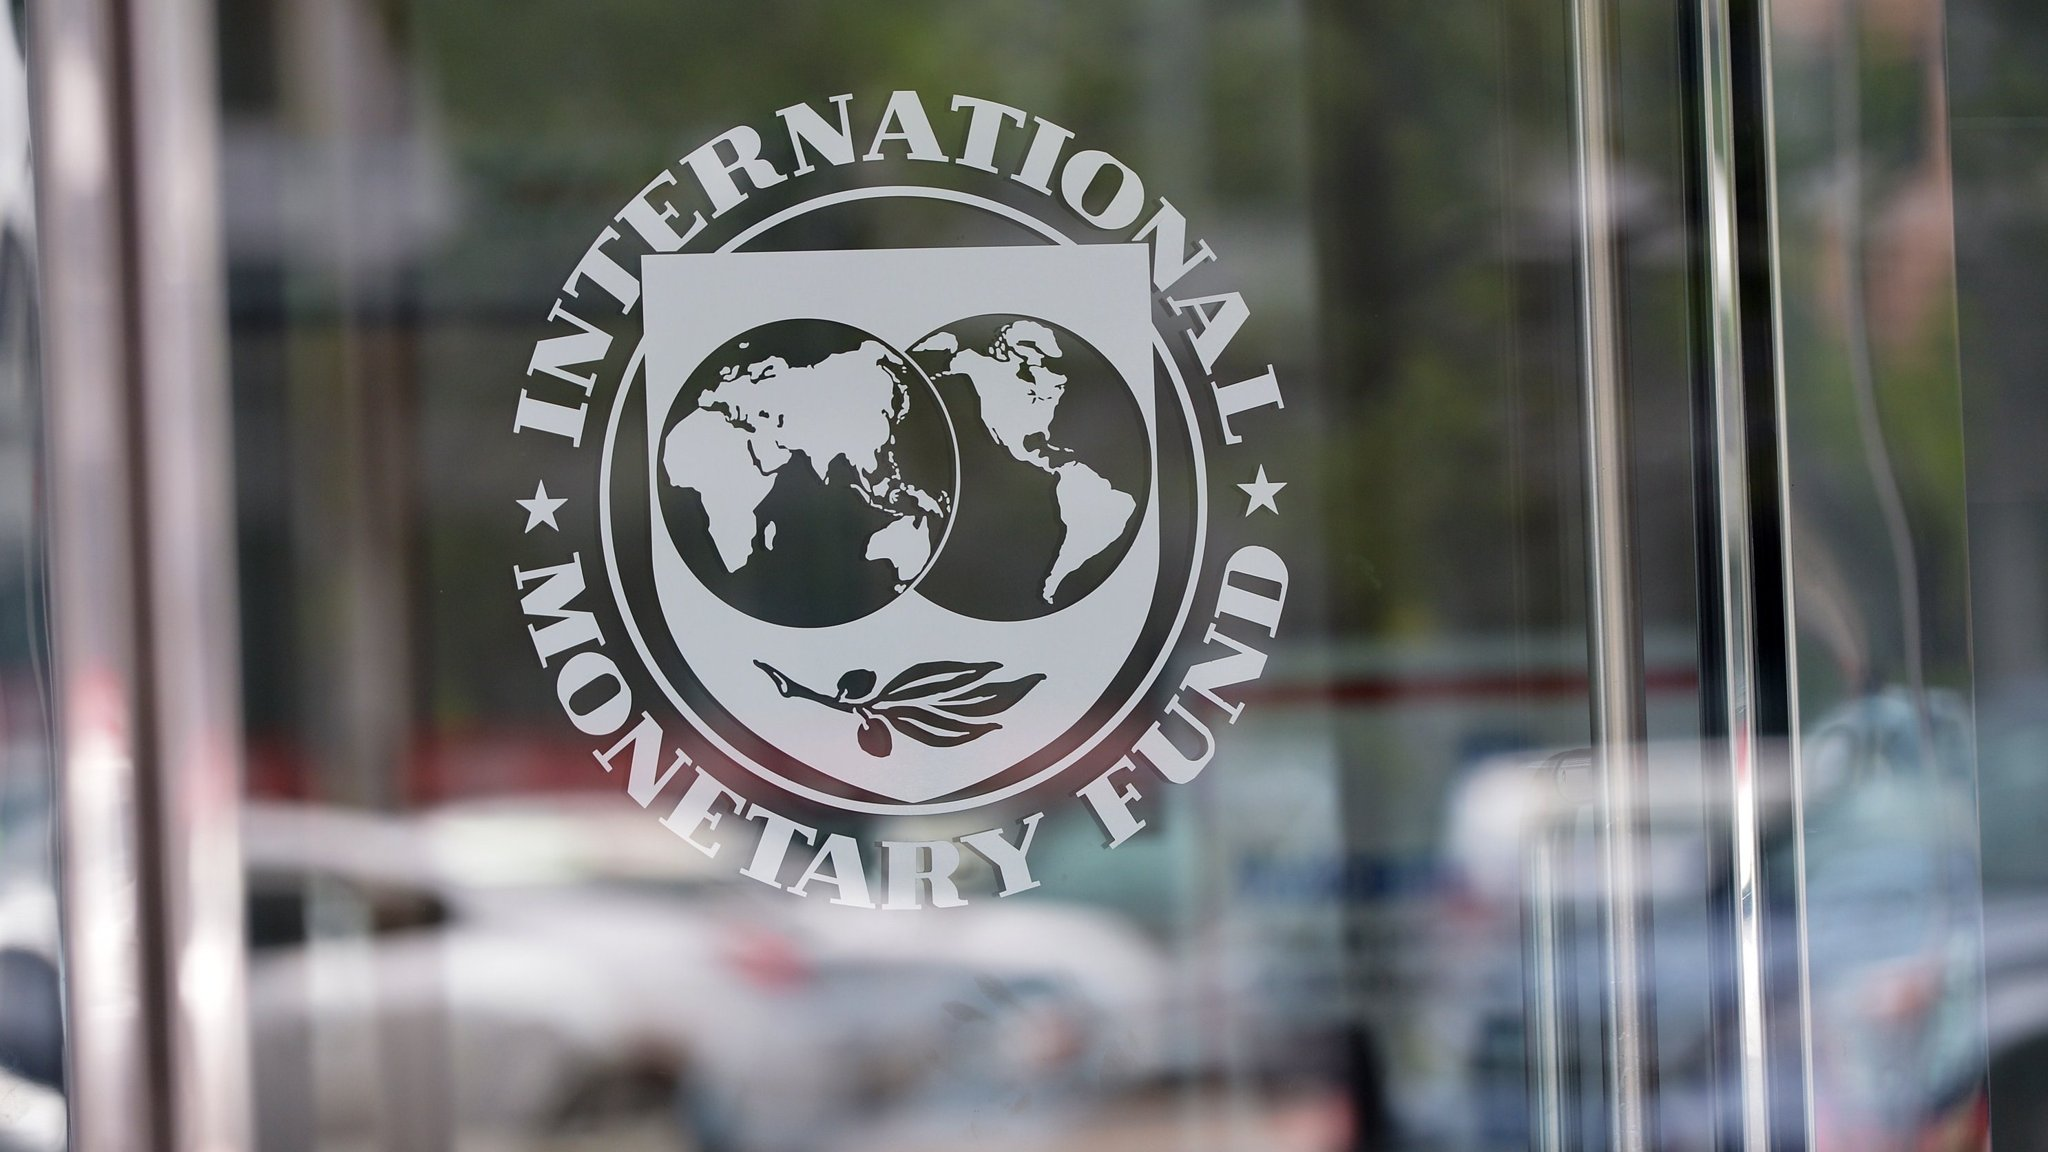 The IMF's road to enlightenment